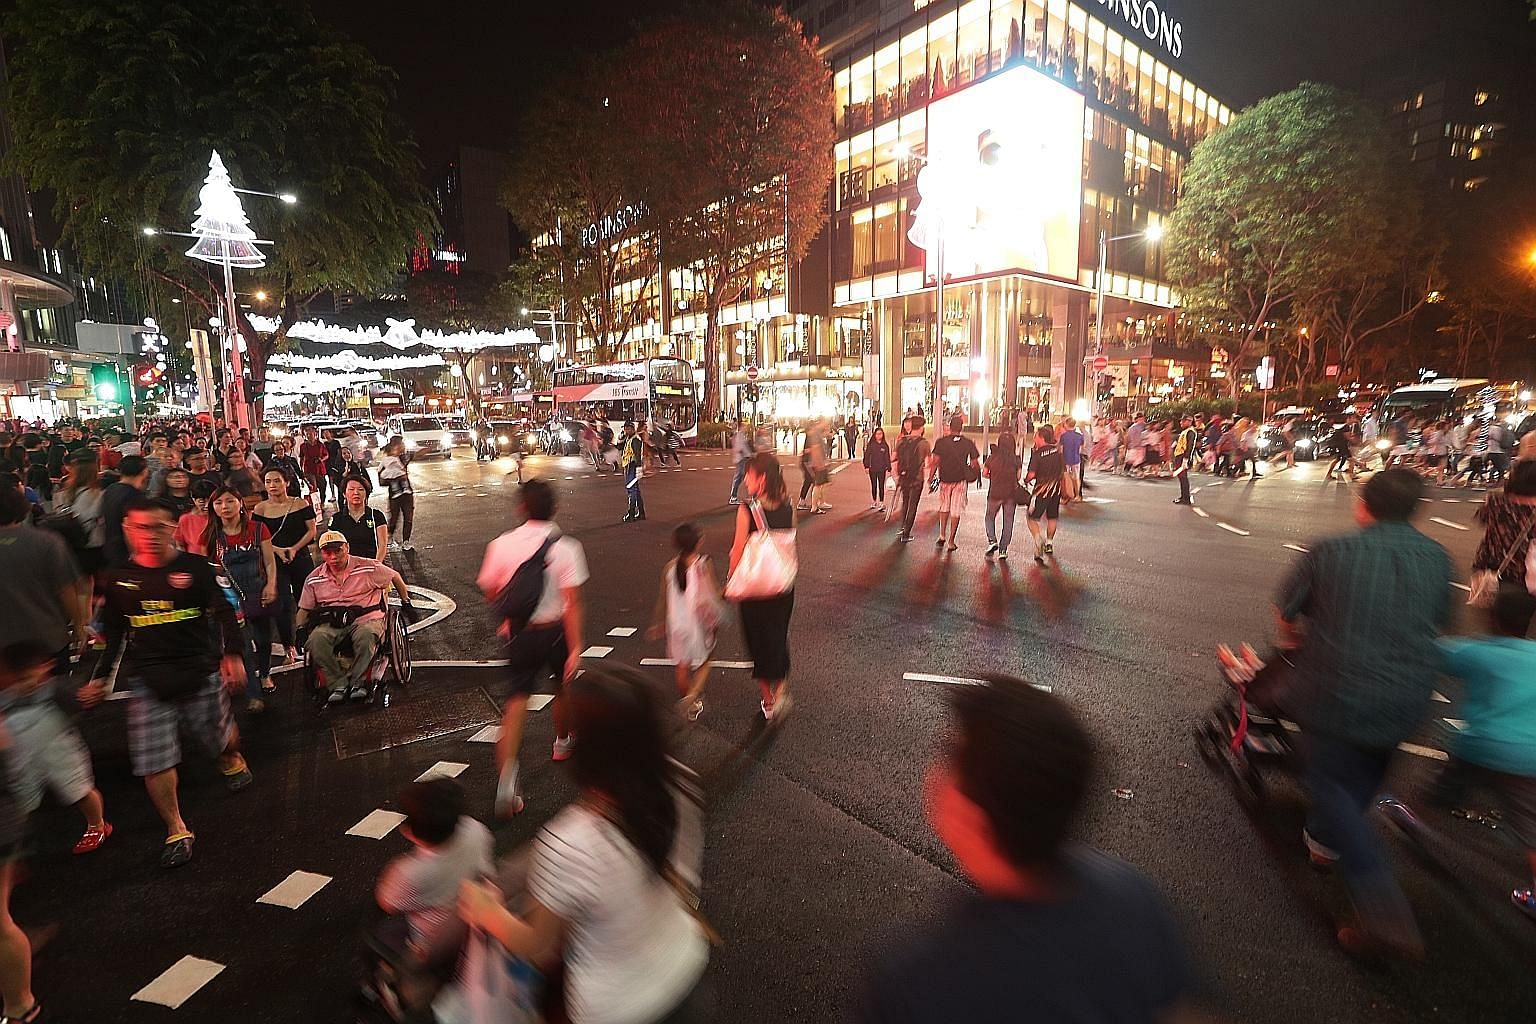 The study will lay the blueprint for Orchard Road, Singapore's premier shopping district, for the next 15 to 20 years. The first part involves finding out how people think about and use Orchard Road. The study will also examine the precinct's physica